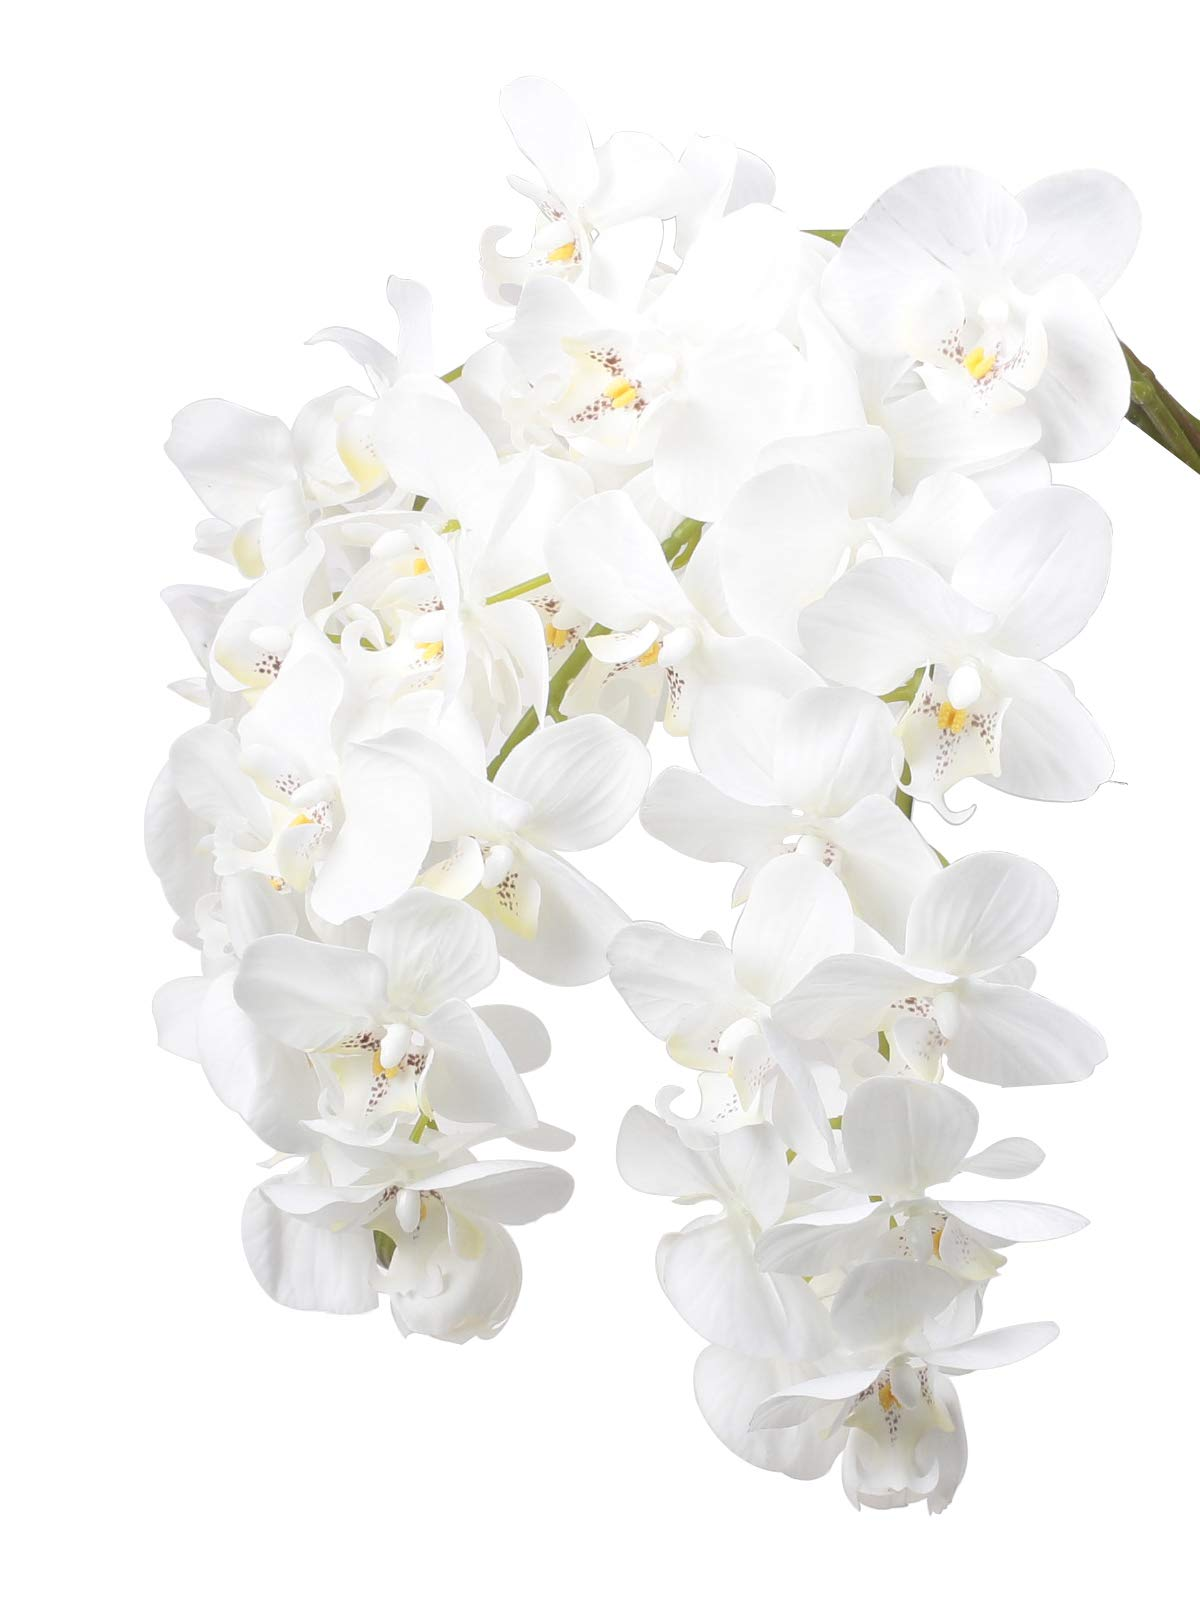 """silk flower arrangements ivalue 28"""" artificial orchid flower stem plants pack of 4 real touch white simulation butterfly phalaenopsis flowers for home wedding party decoration (4, white orchid)"""